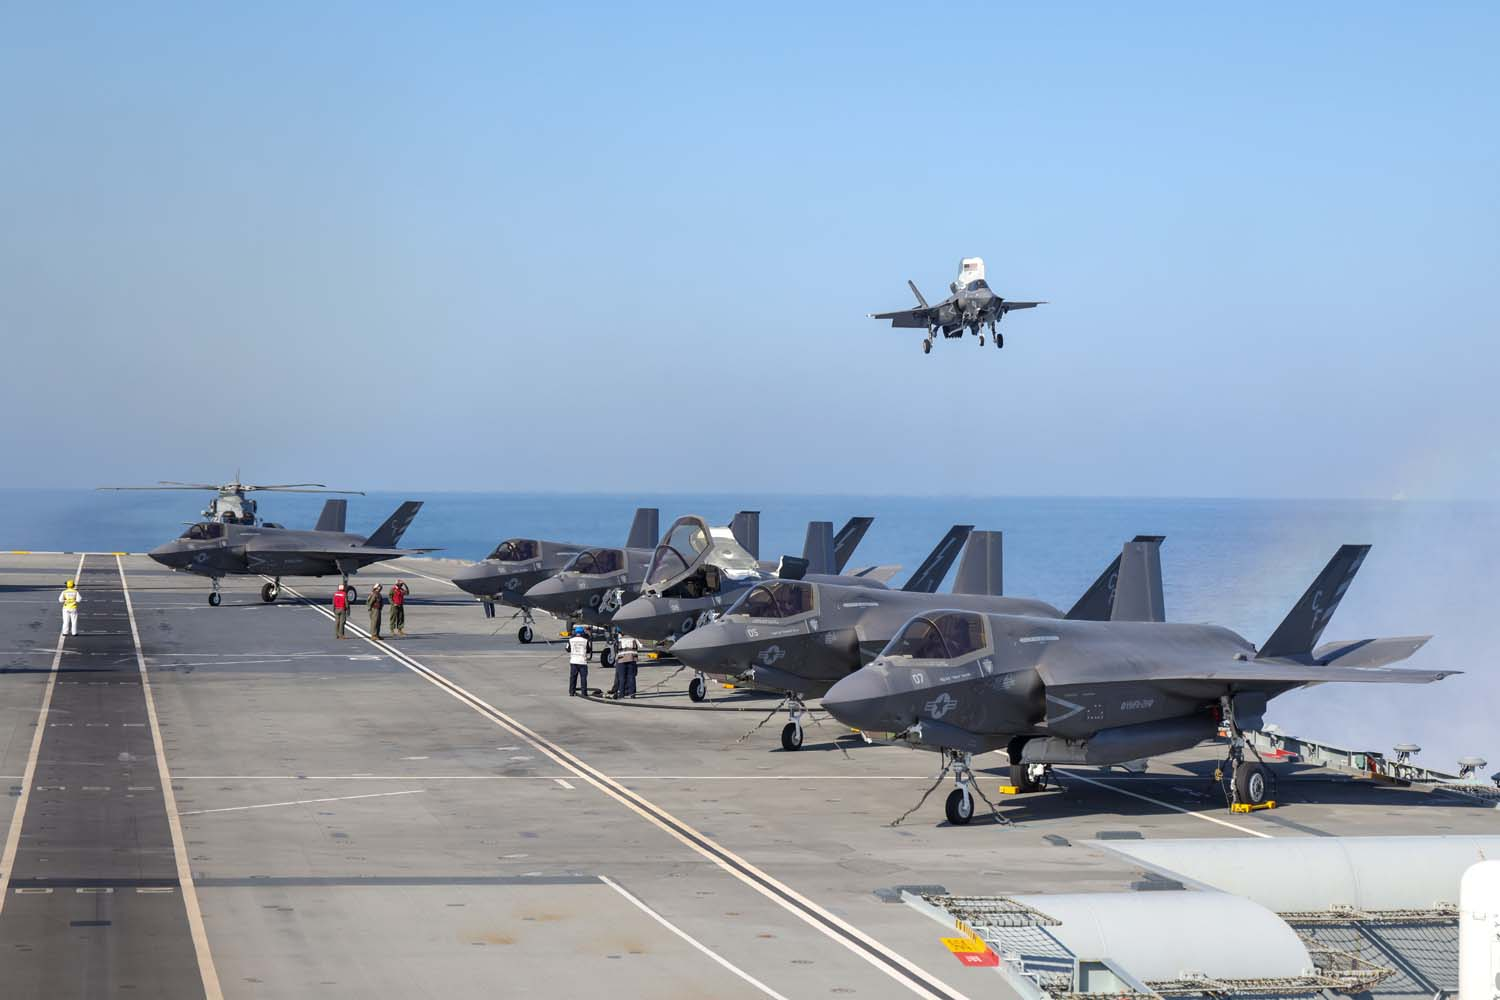 Some of the highlights from the UK's Carrier Strike Group deployment so far